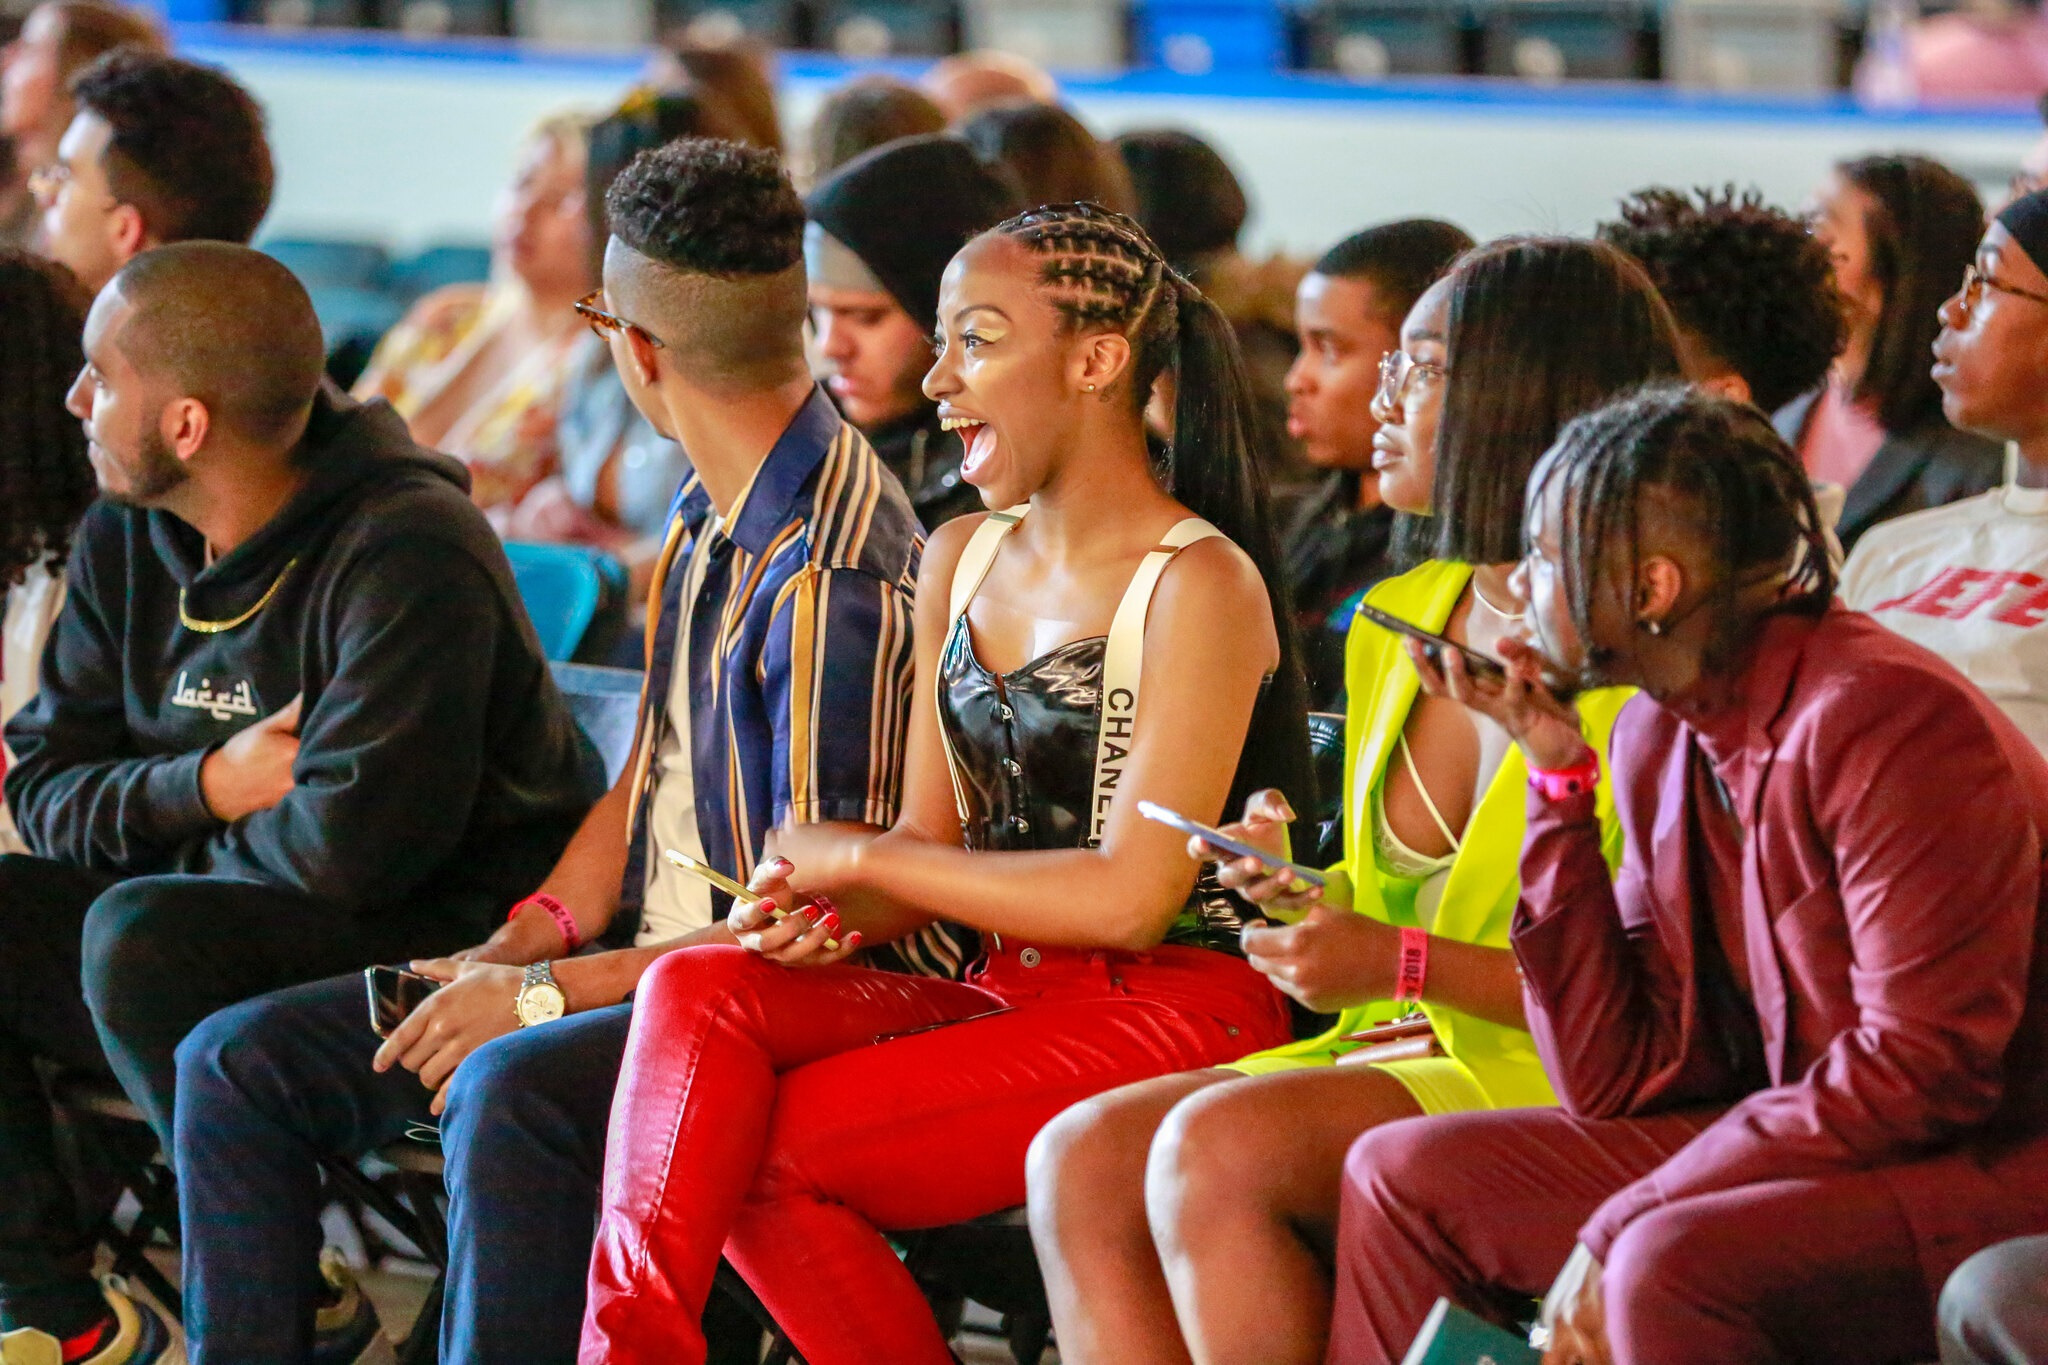 Students enjoy the Black United Body fashion show